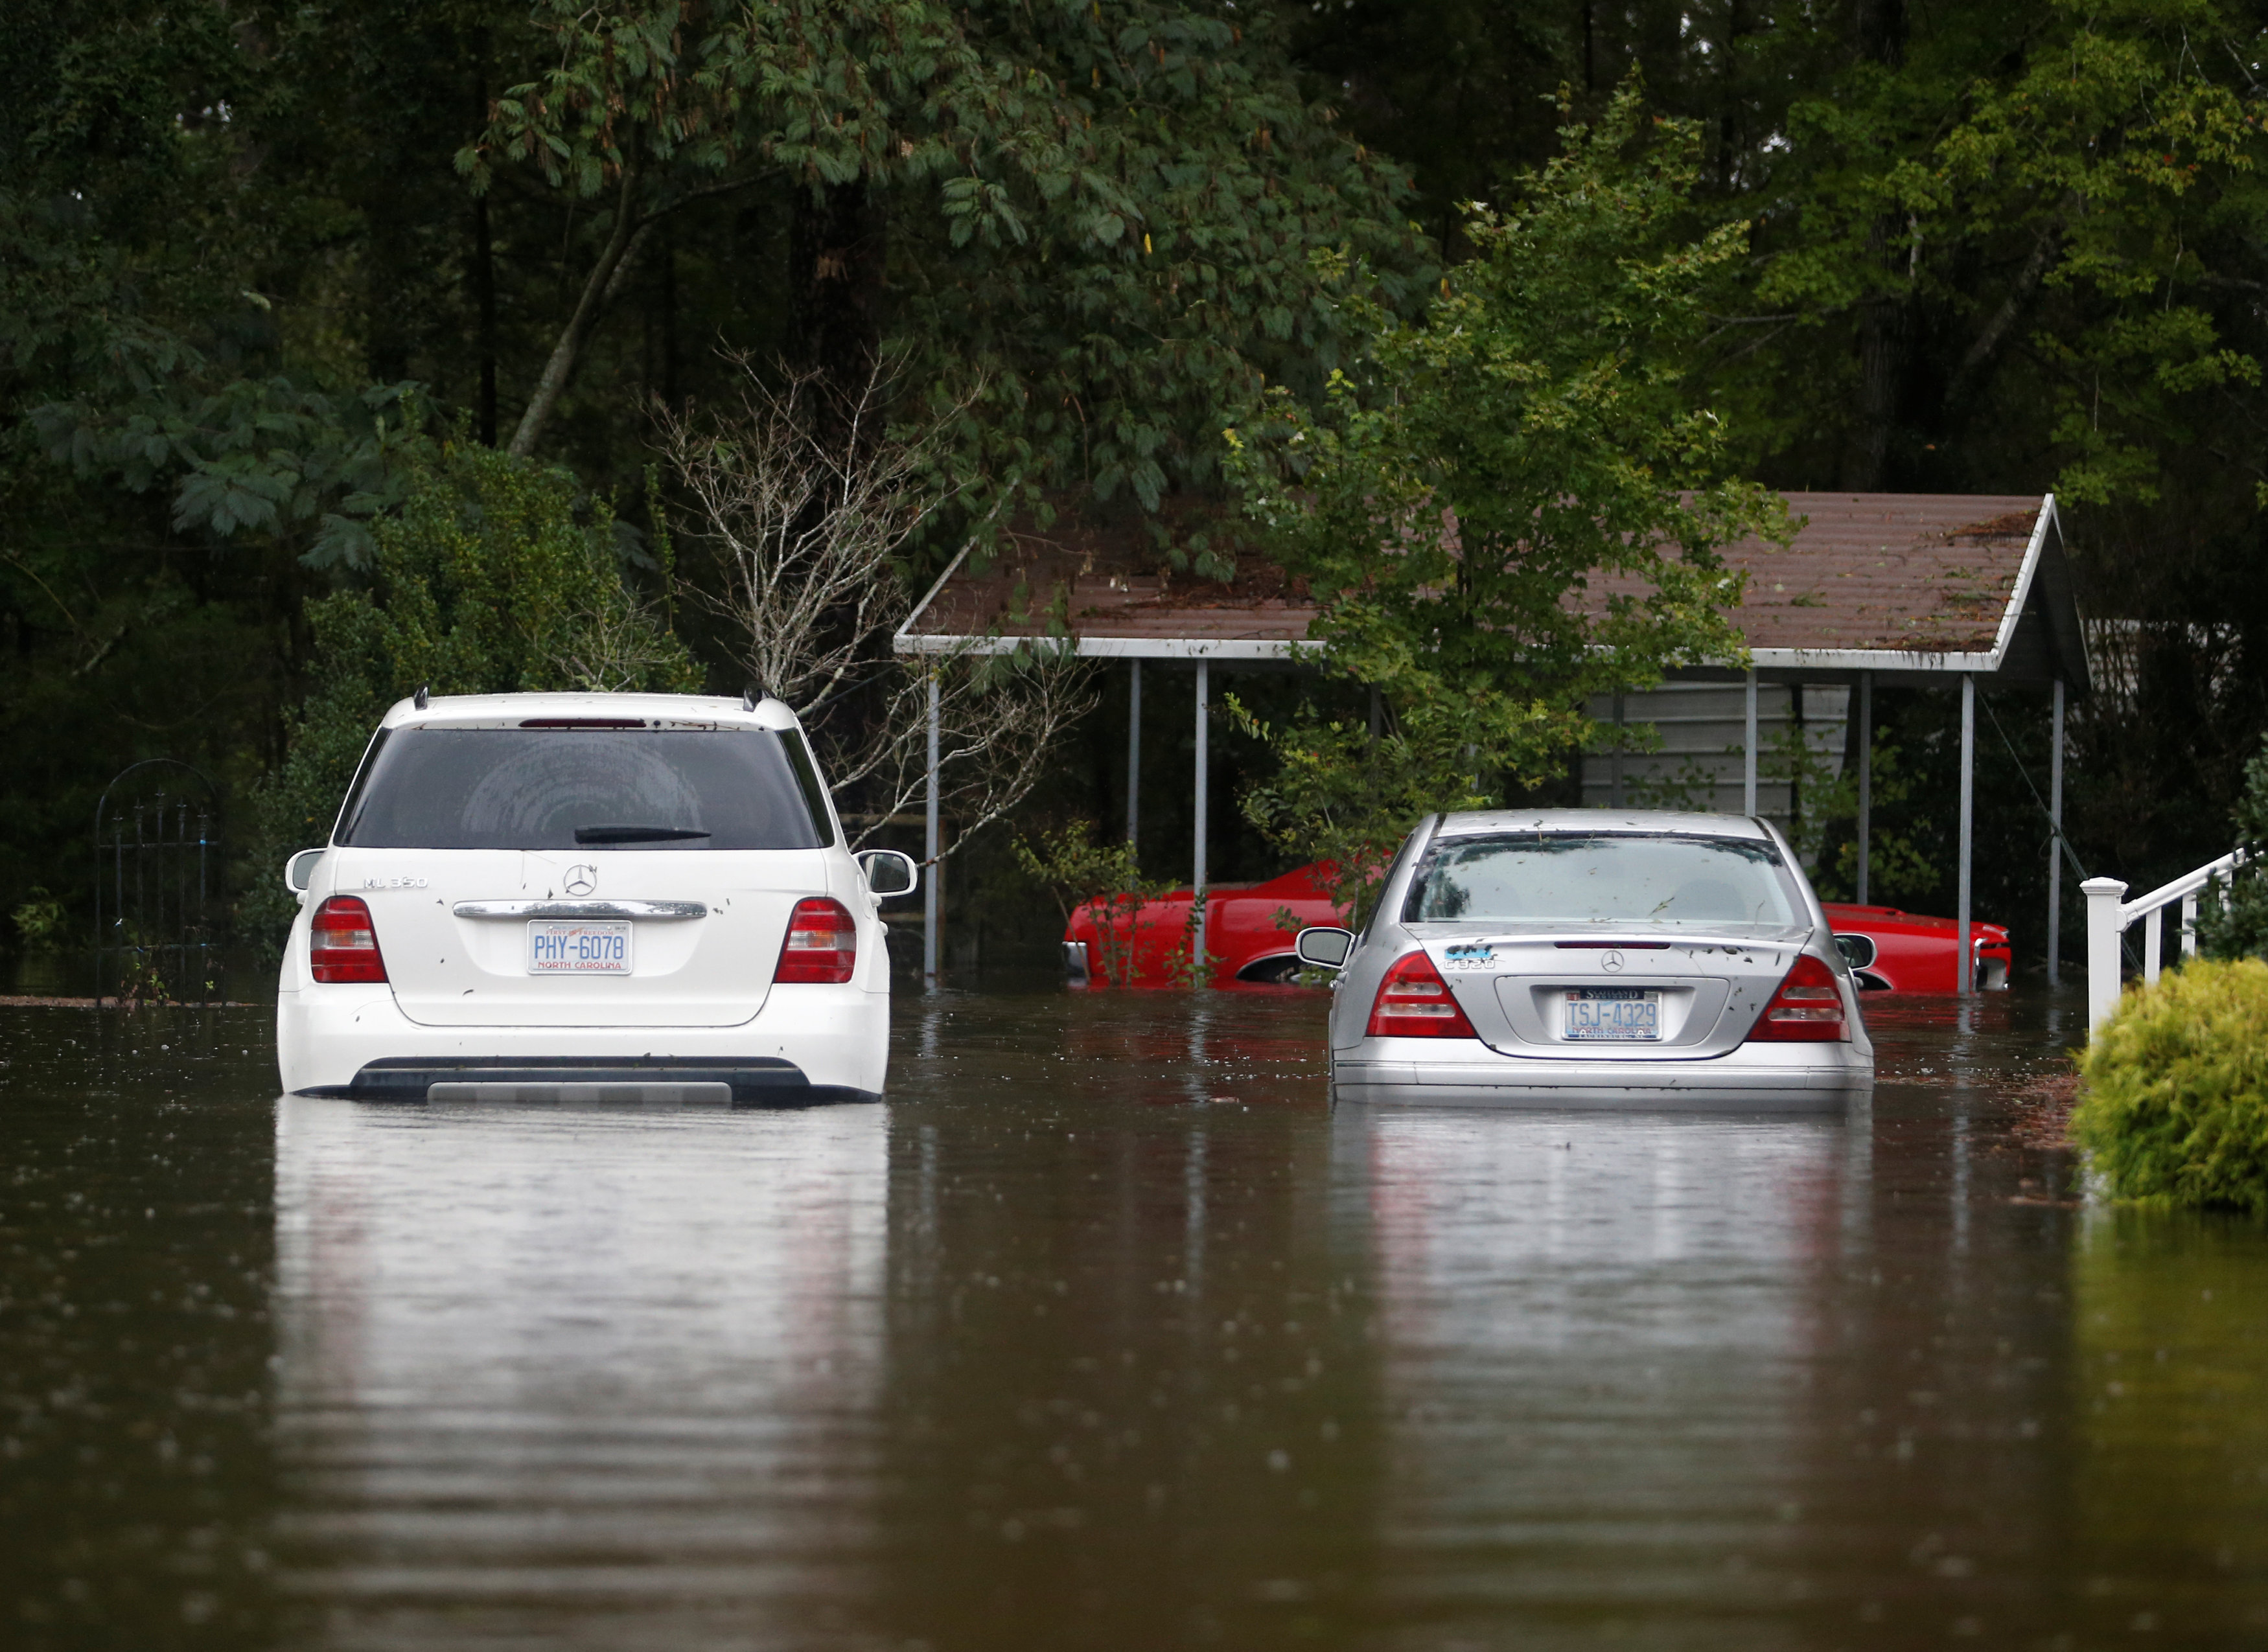 Cars sit flooded in the Mayfair community during Tropical Storm Florence in Lumberton